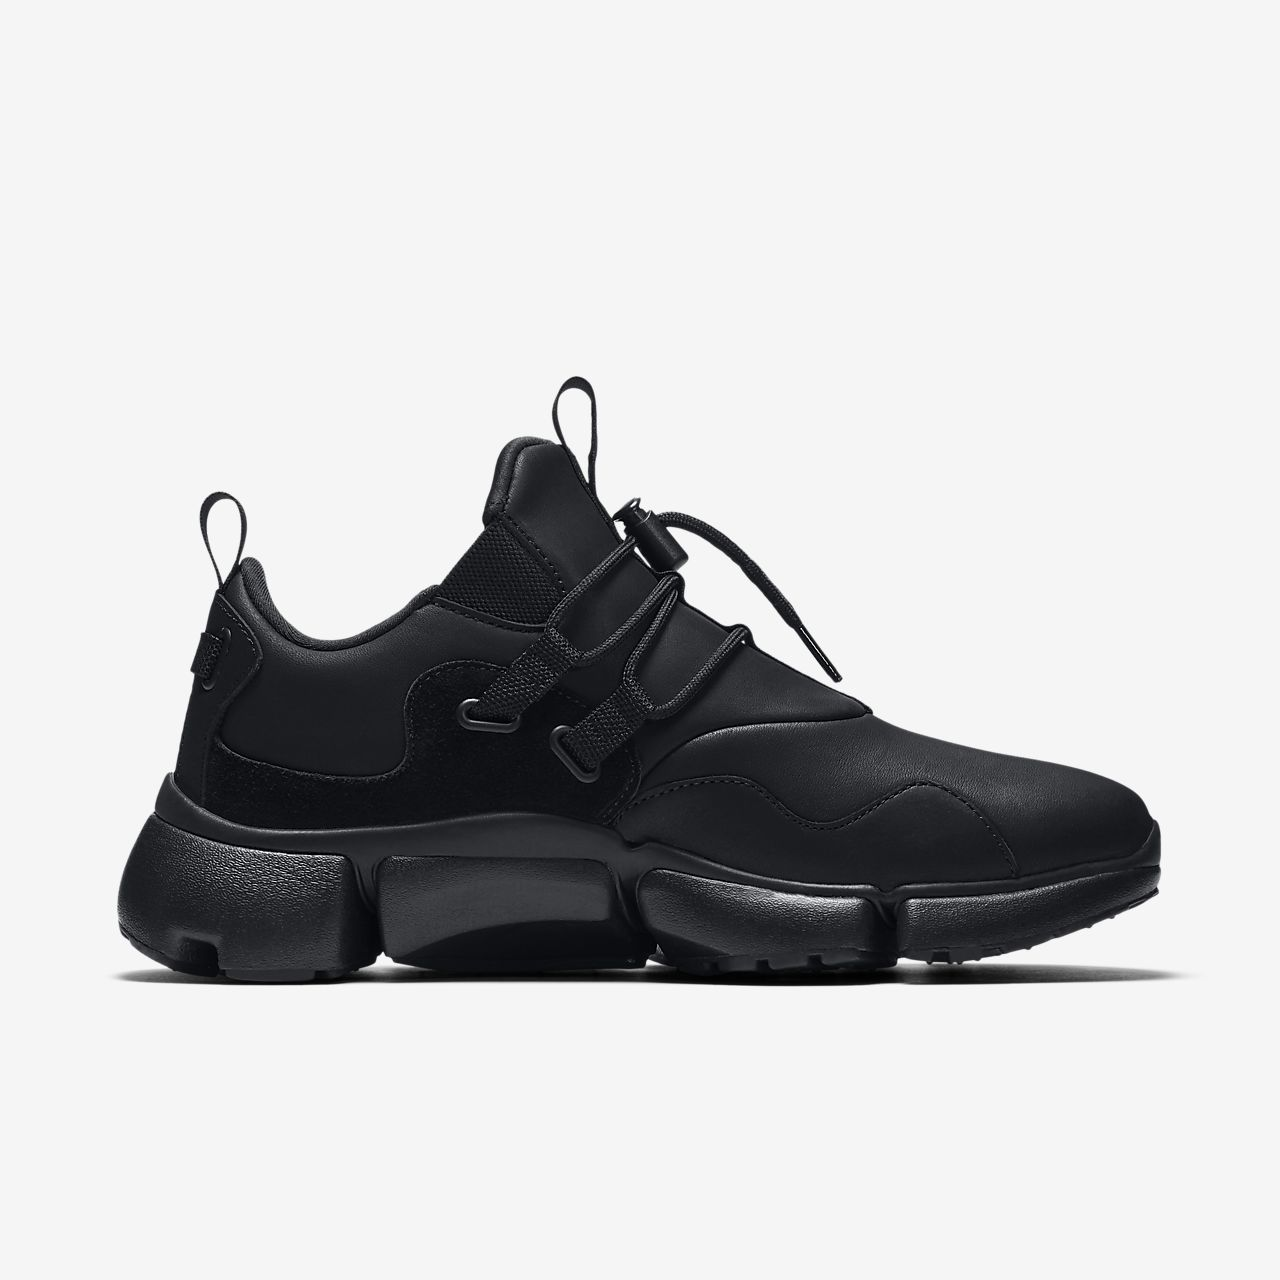 Nike Pocket Knife DM Leather Men's Lifestyle Shoes Black sF2532W